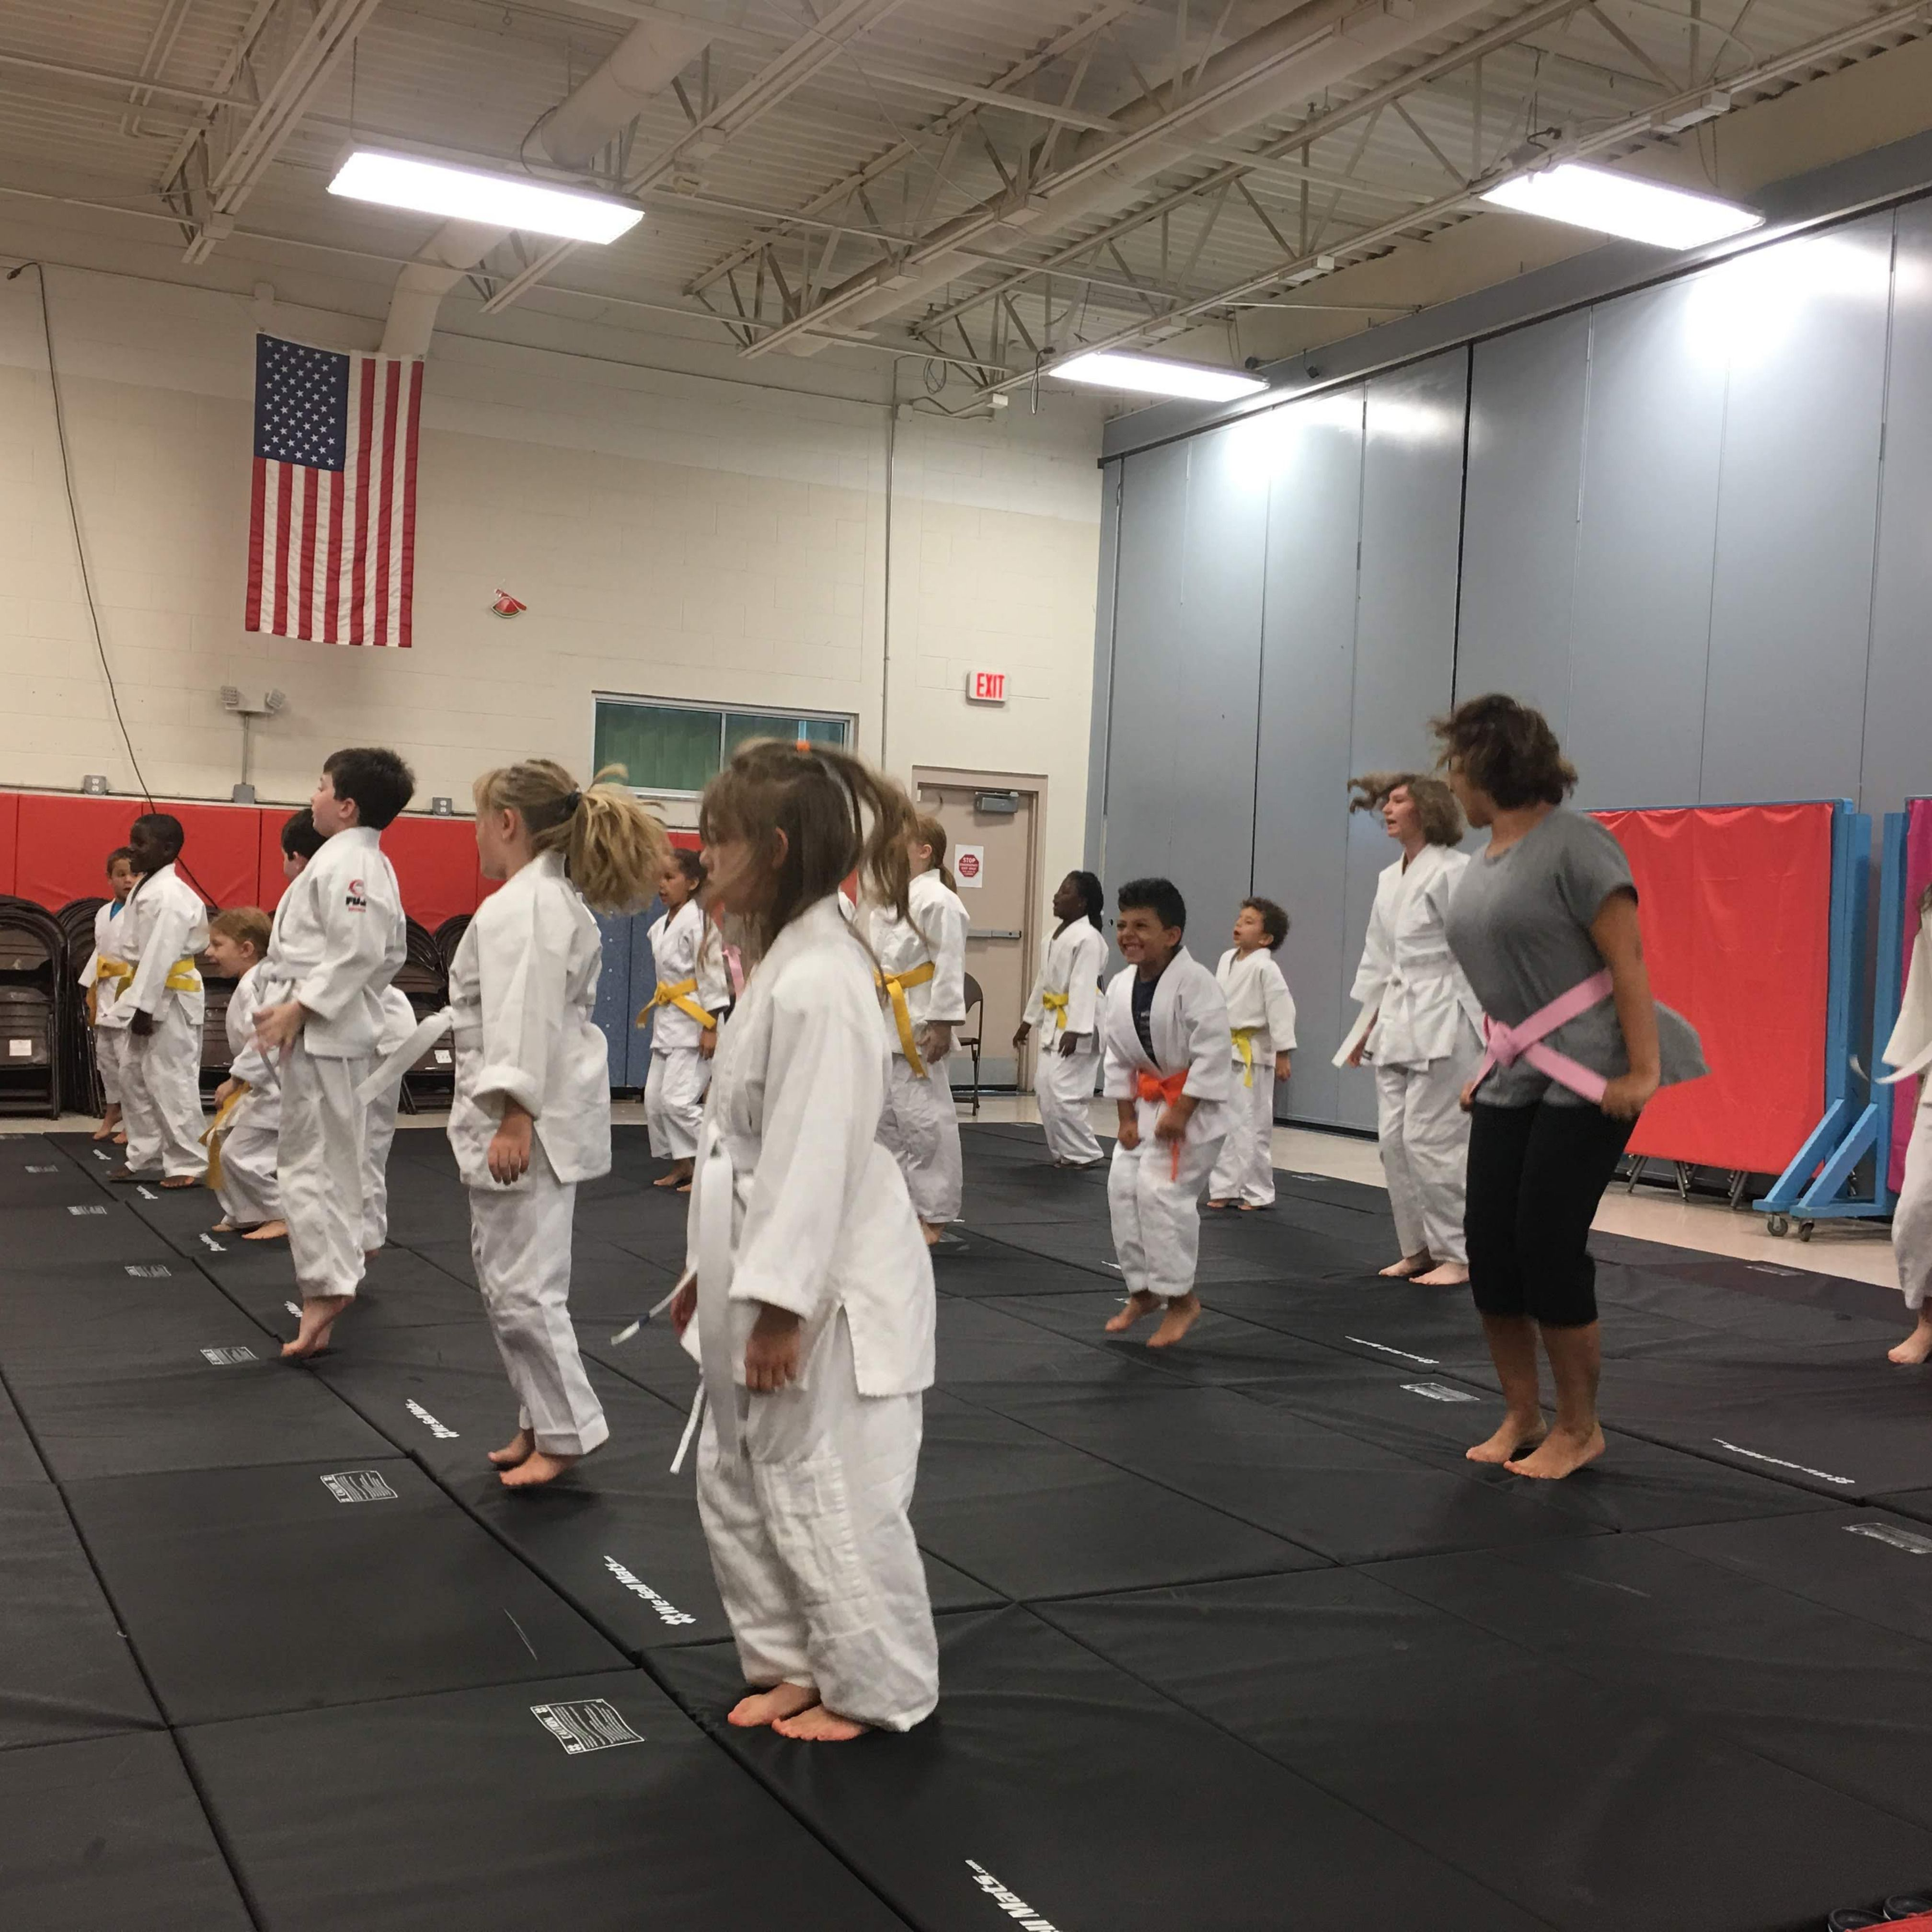 Family martial arts fitness with images family